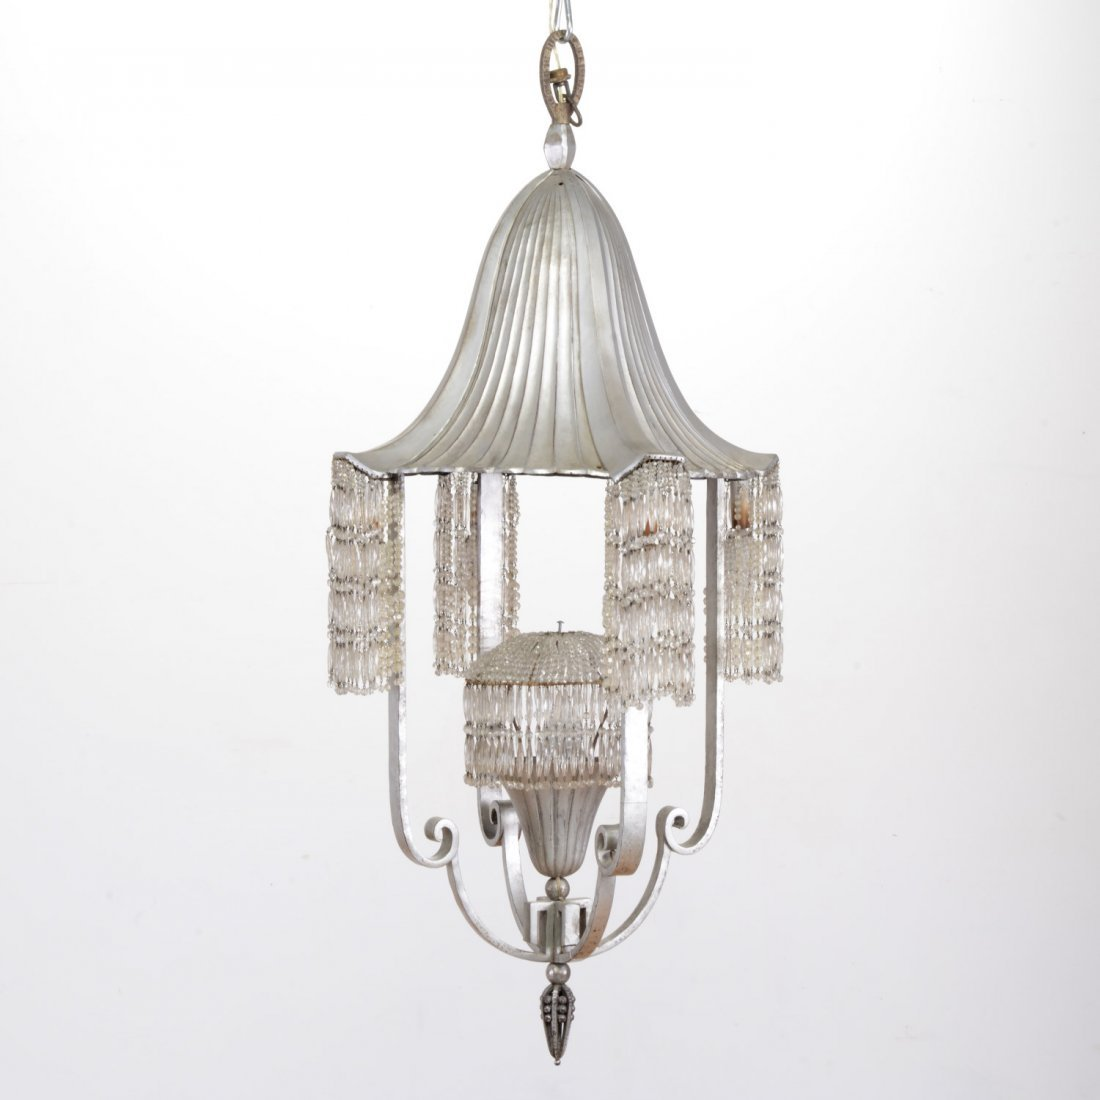 Very nice Ruhlmann style silvered iron chandelier